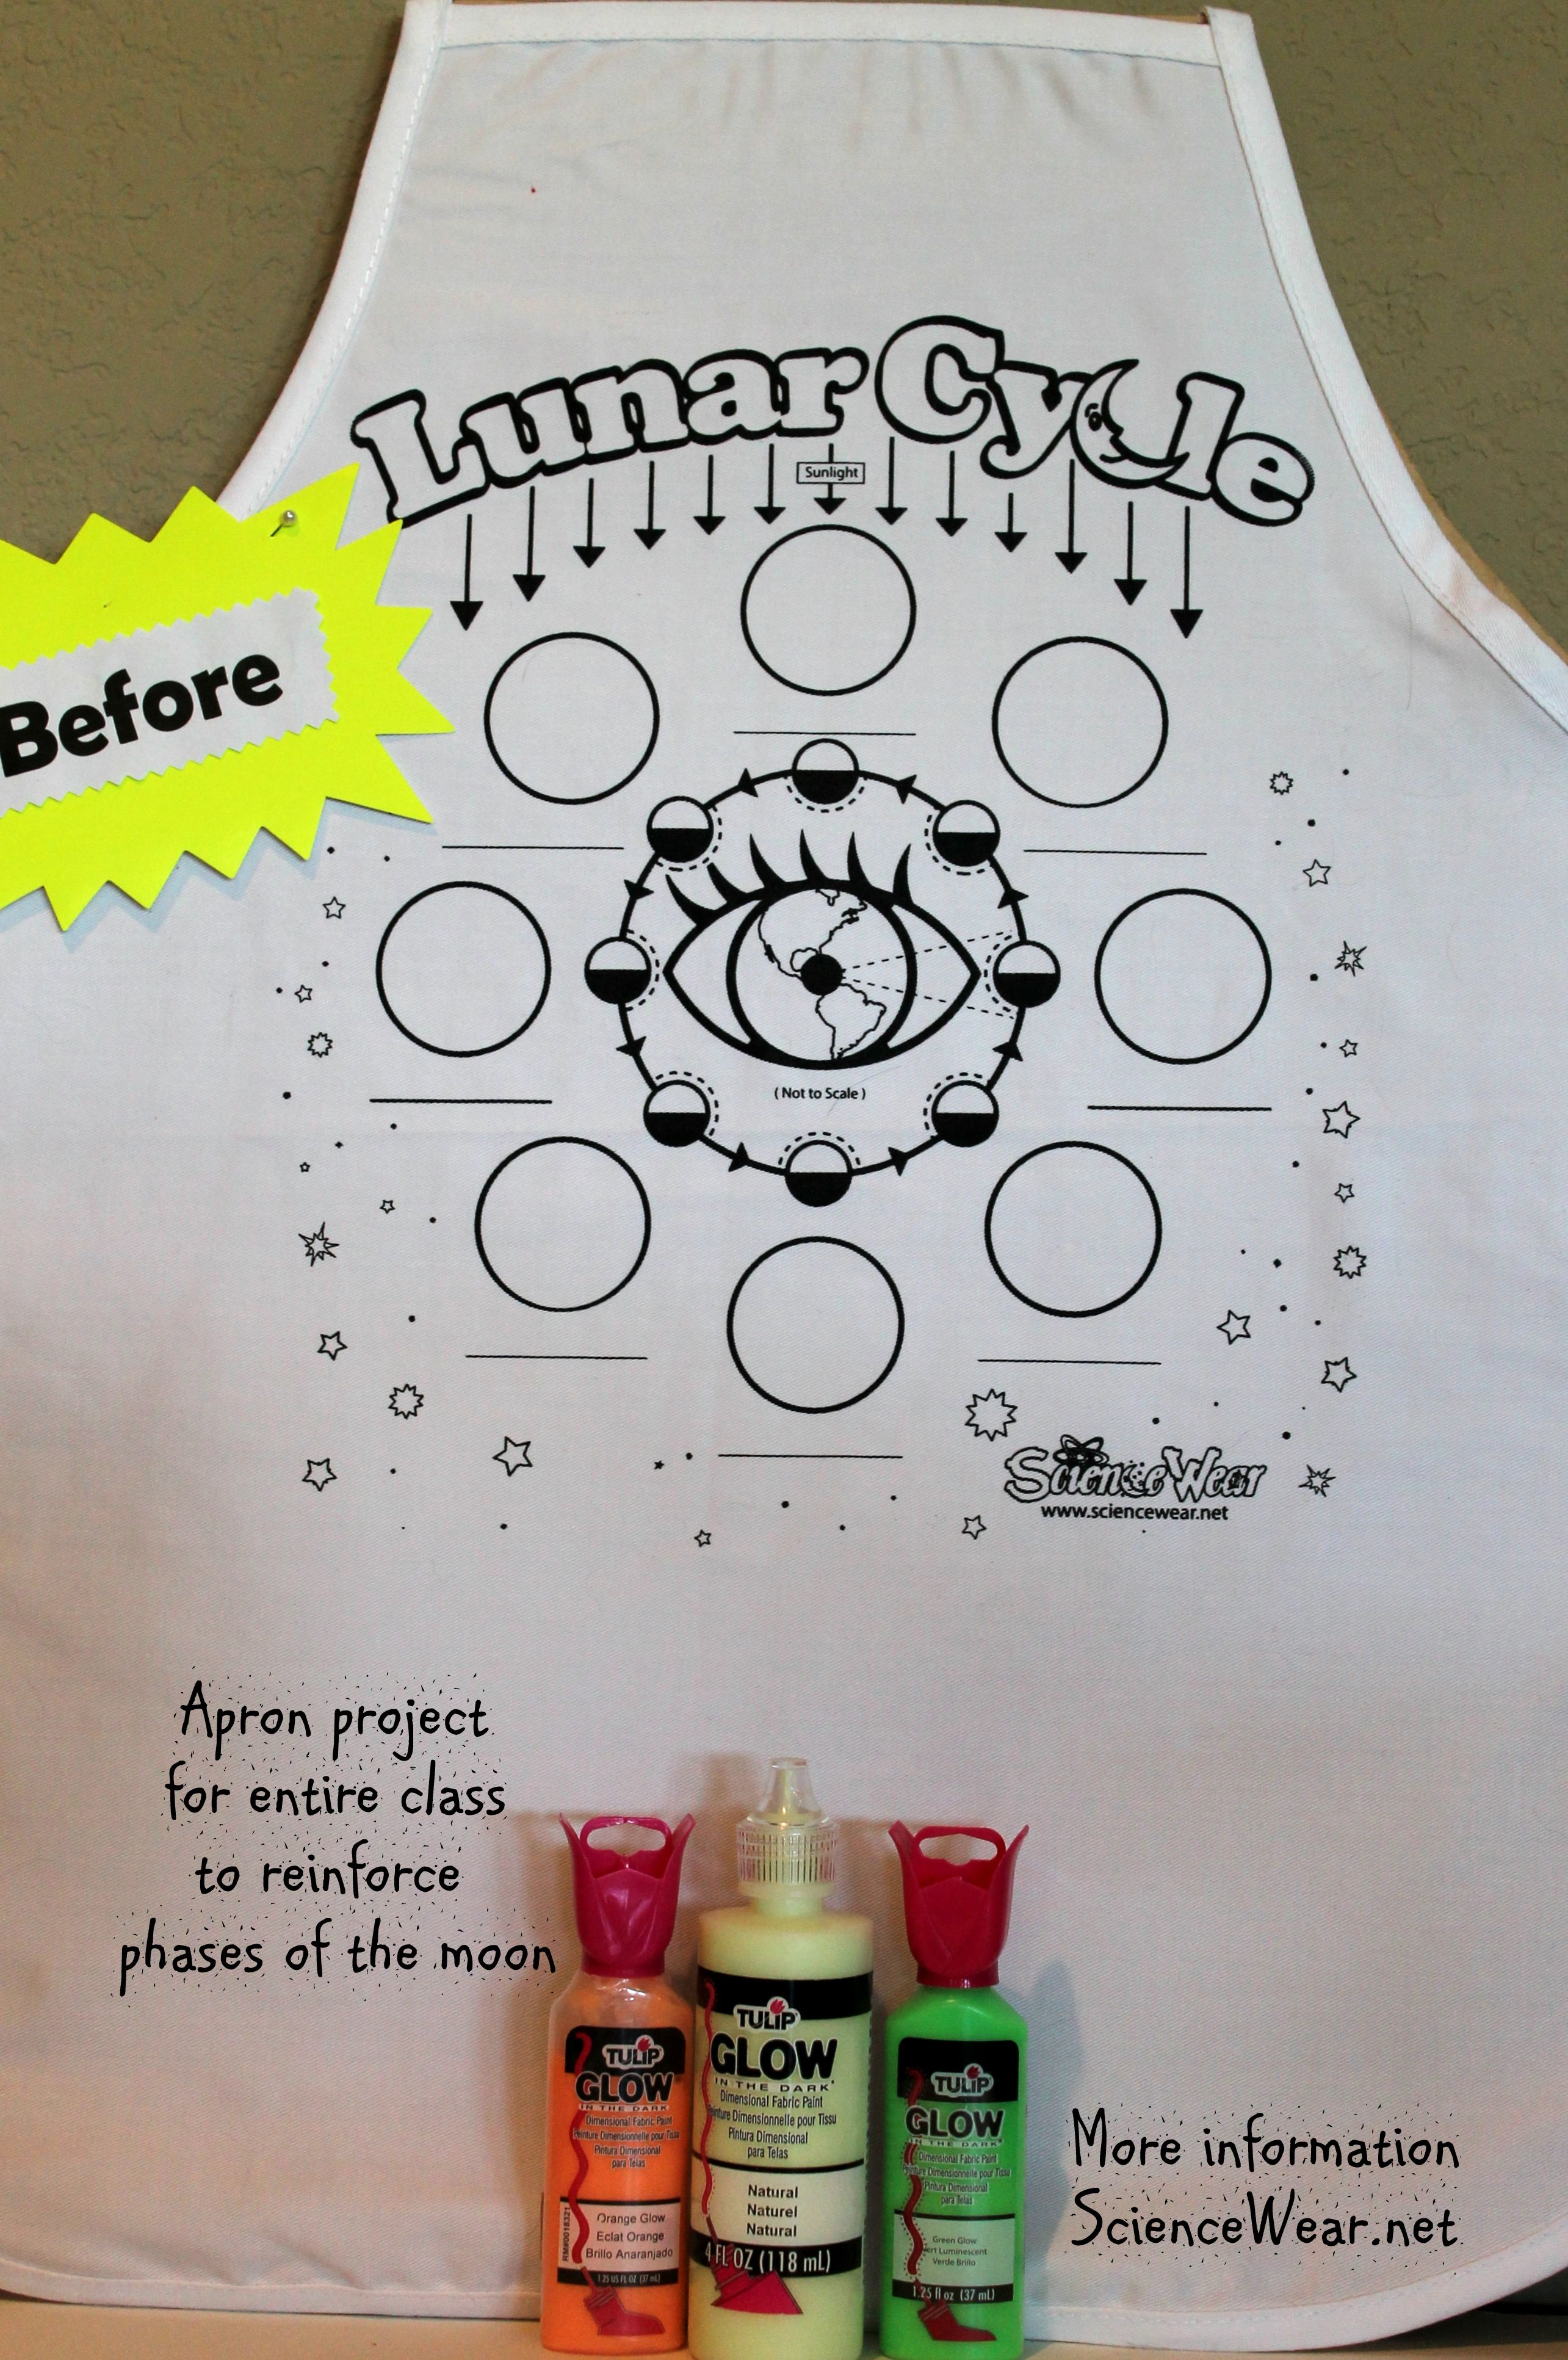 Make your own Lunar Cycle apron classroom project! Aprons are only $6 (bulk minimum of 12) and one size fits most.  Done with fabric markers and glow-in-the-dark paint for the phases.  instructions, project guidelines, student plan sheet and letter to parent to assist in collecting money for apron, can be found at http://sciencewear.net/lunar-cycle.html Everyone loves this project and it really helps students understand the phases!